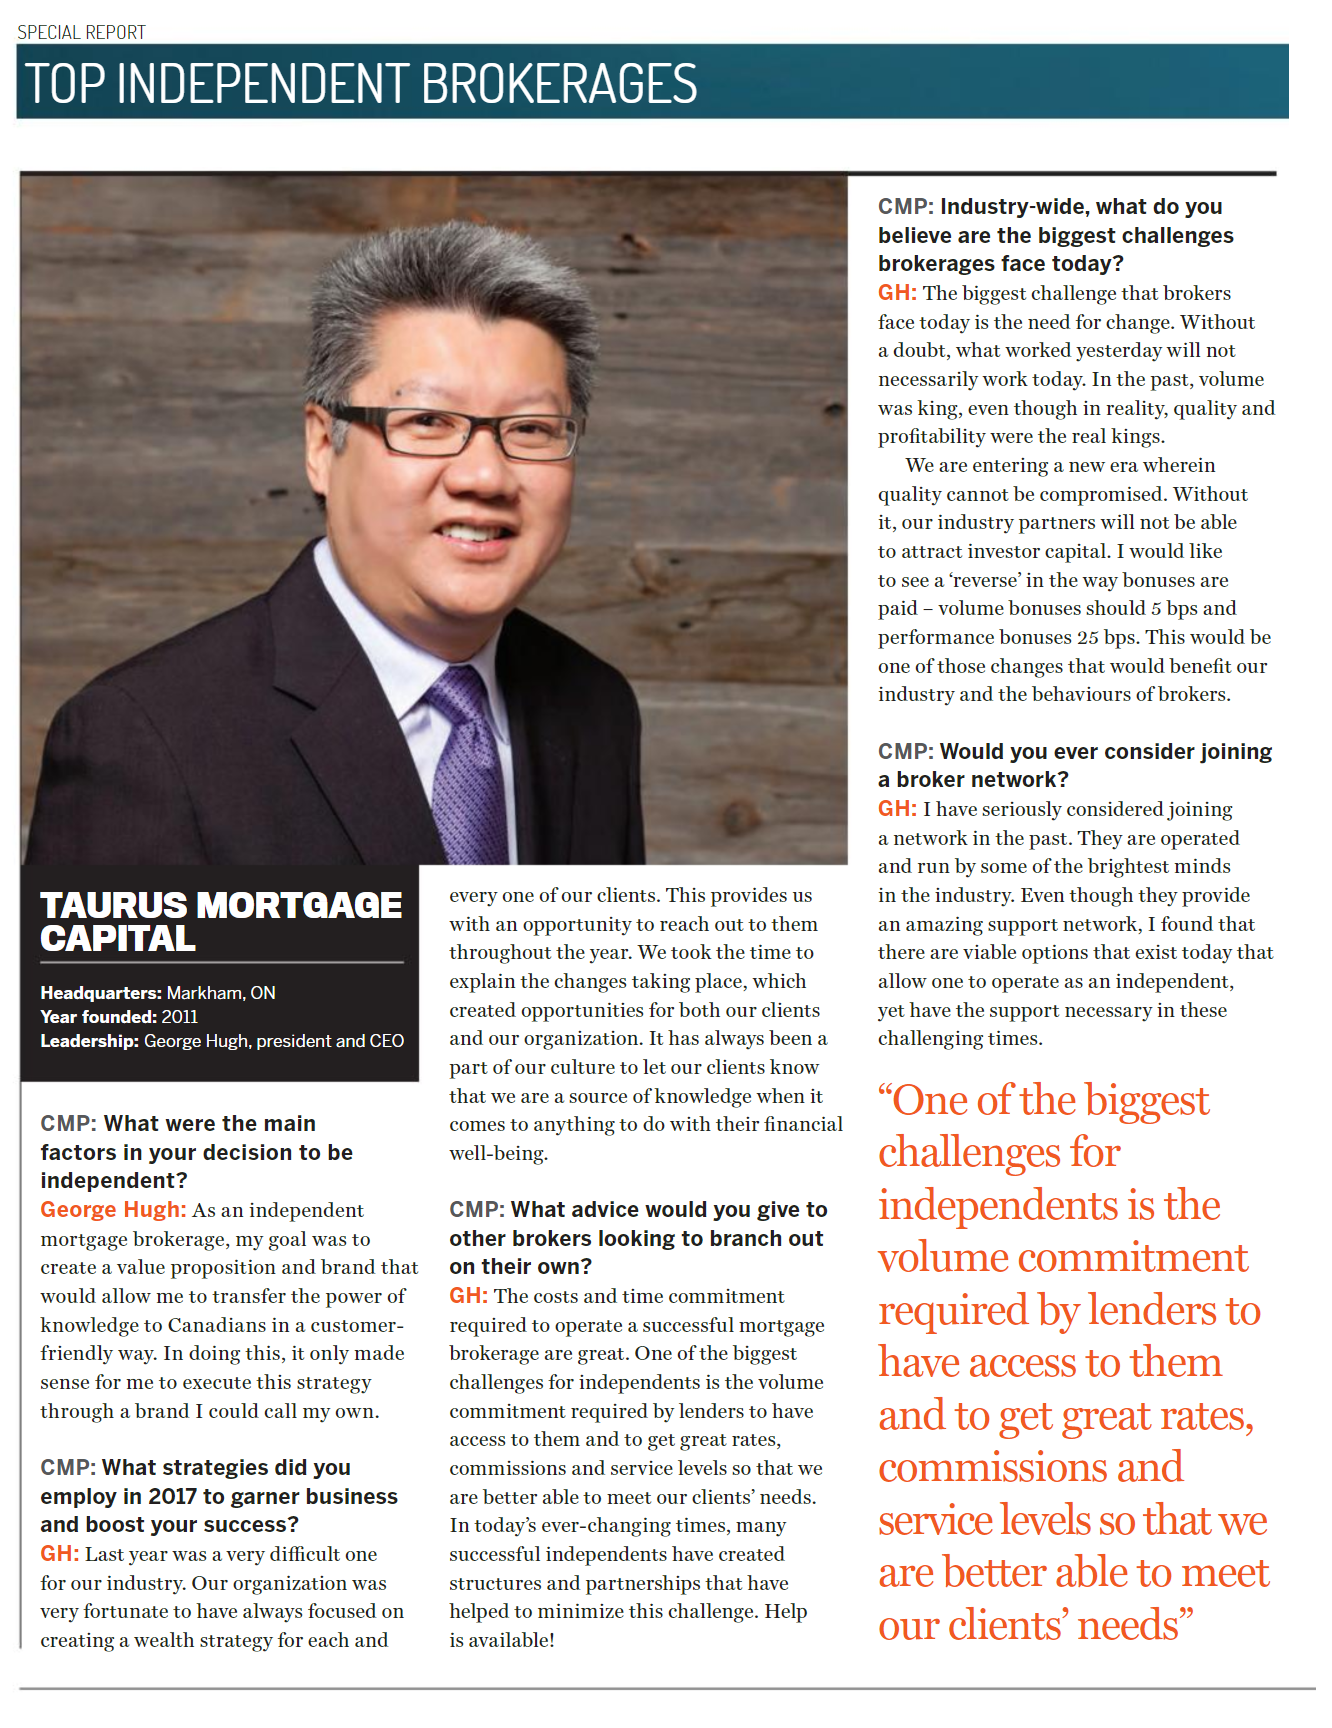 TMC - CIMBC Article Featuring George Hugh.png